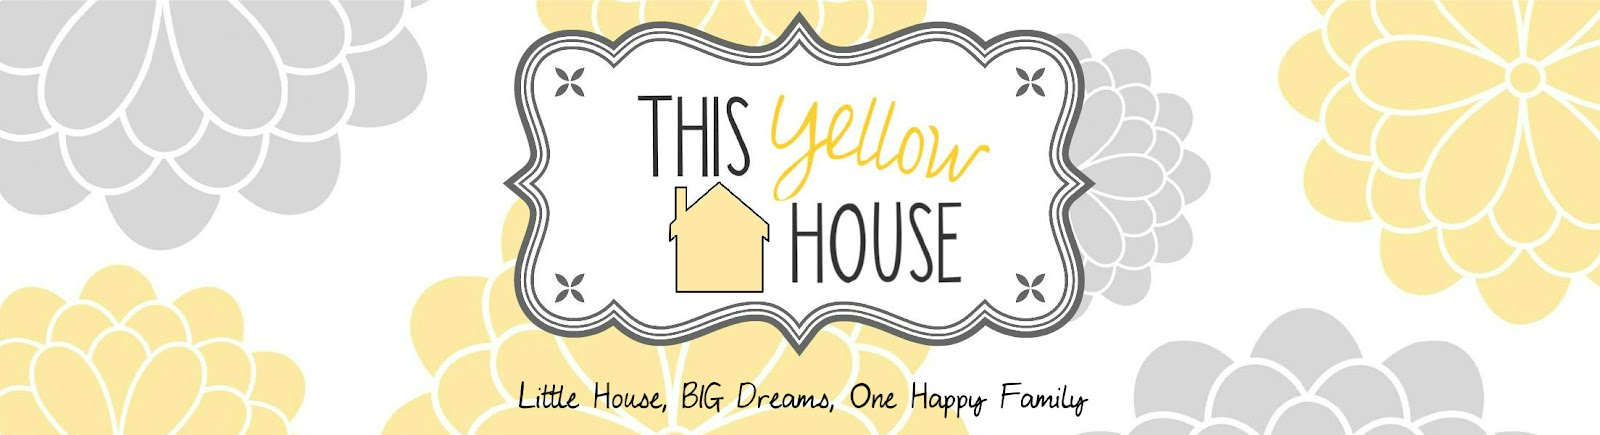 This Yellow House